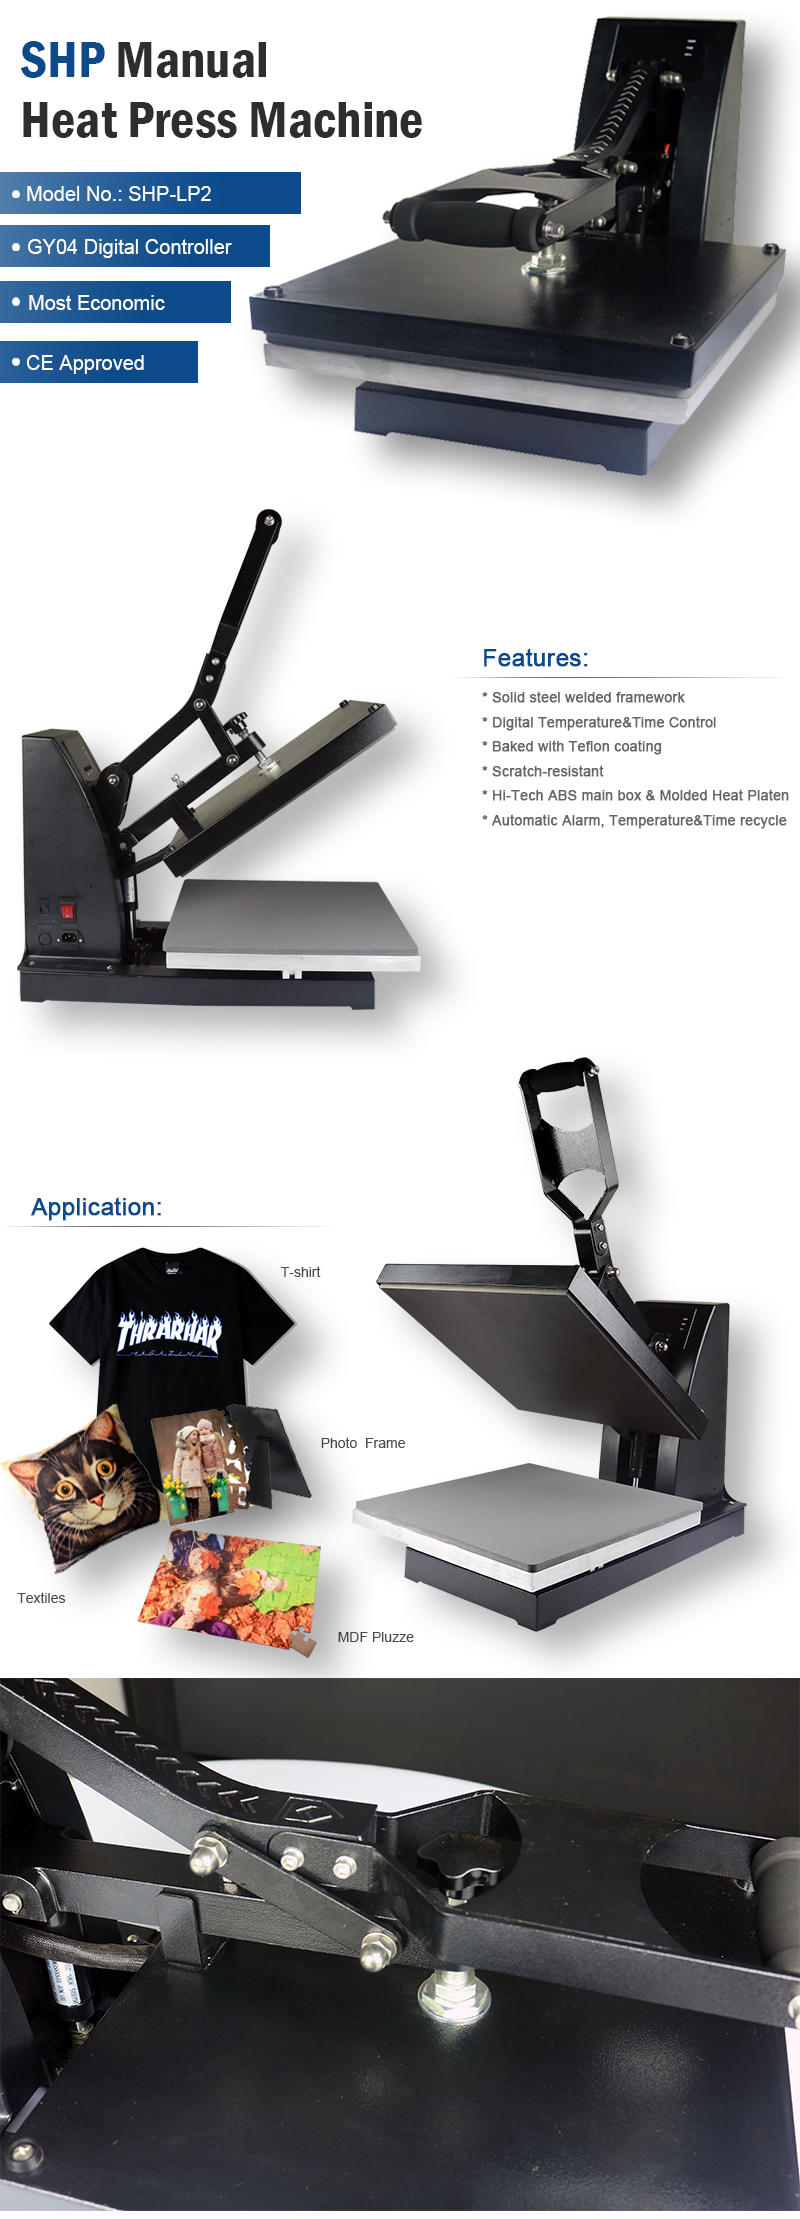 HEAT PRESS FACTORY